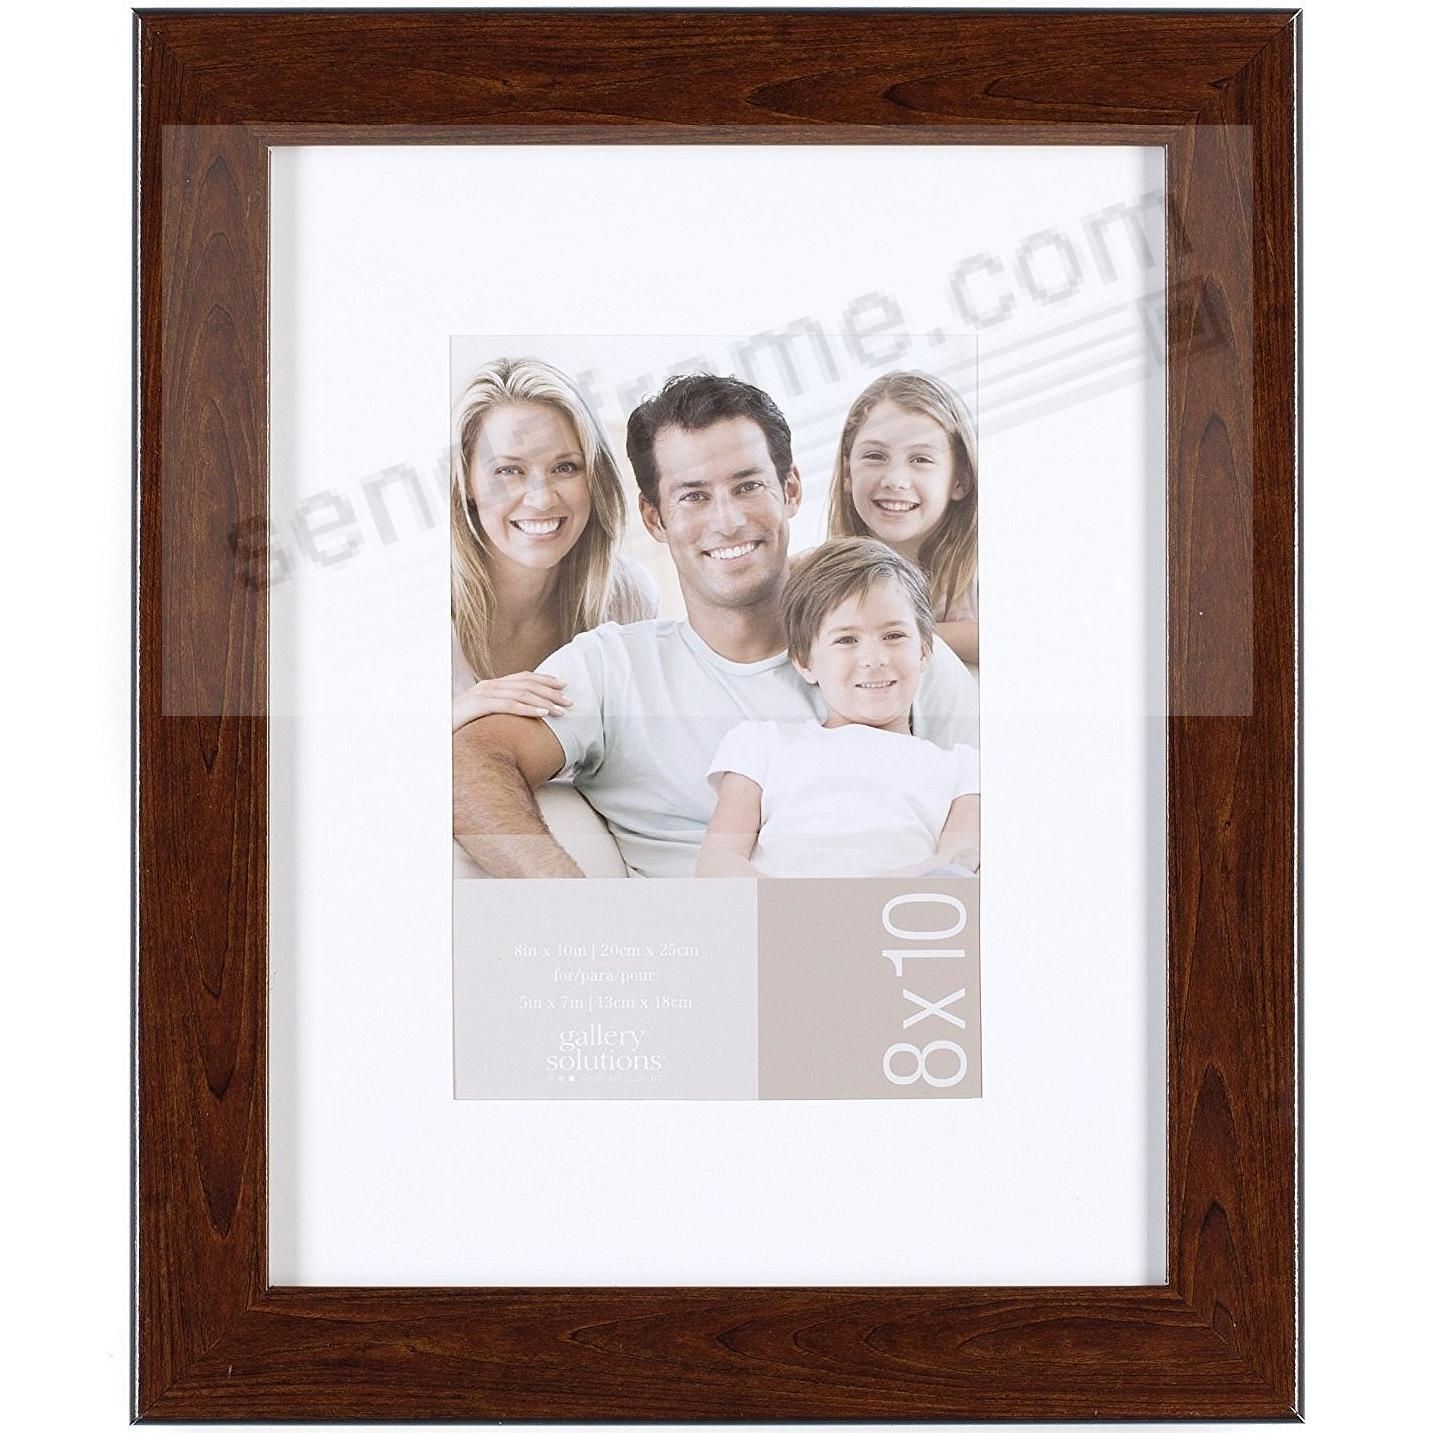 Brown-Ashwood 8x10/5x7 matted frame by Gallery Solutions™